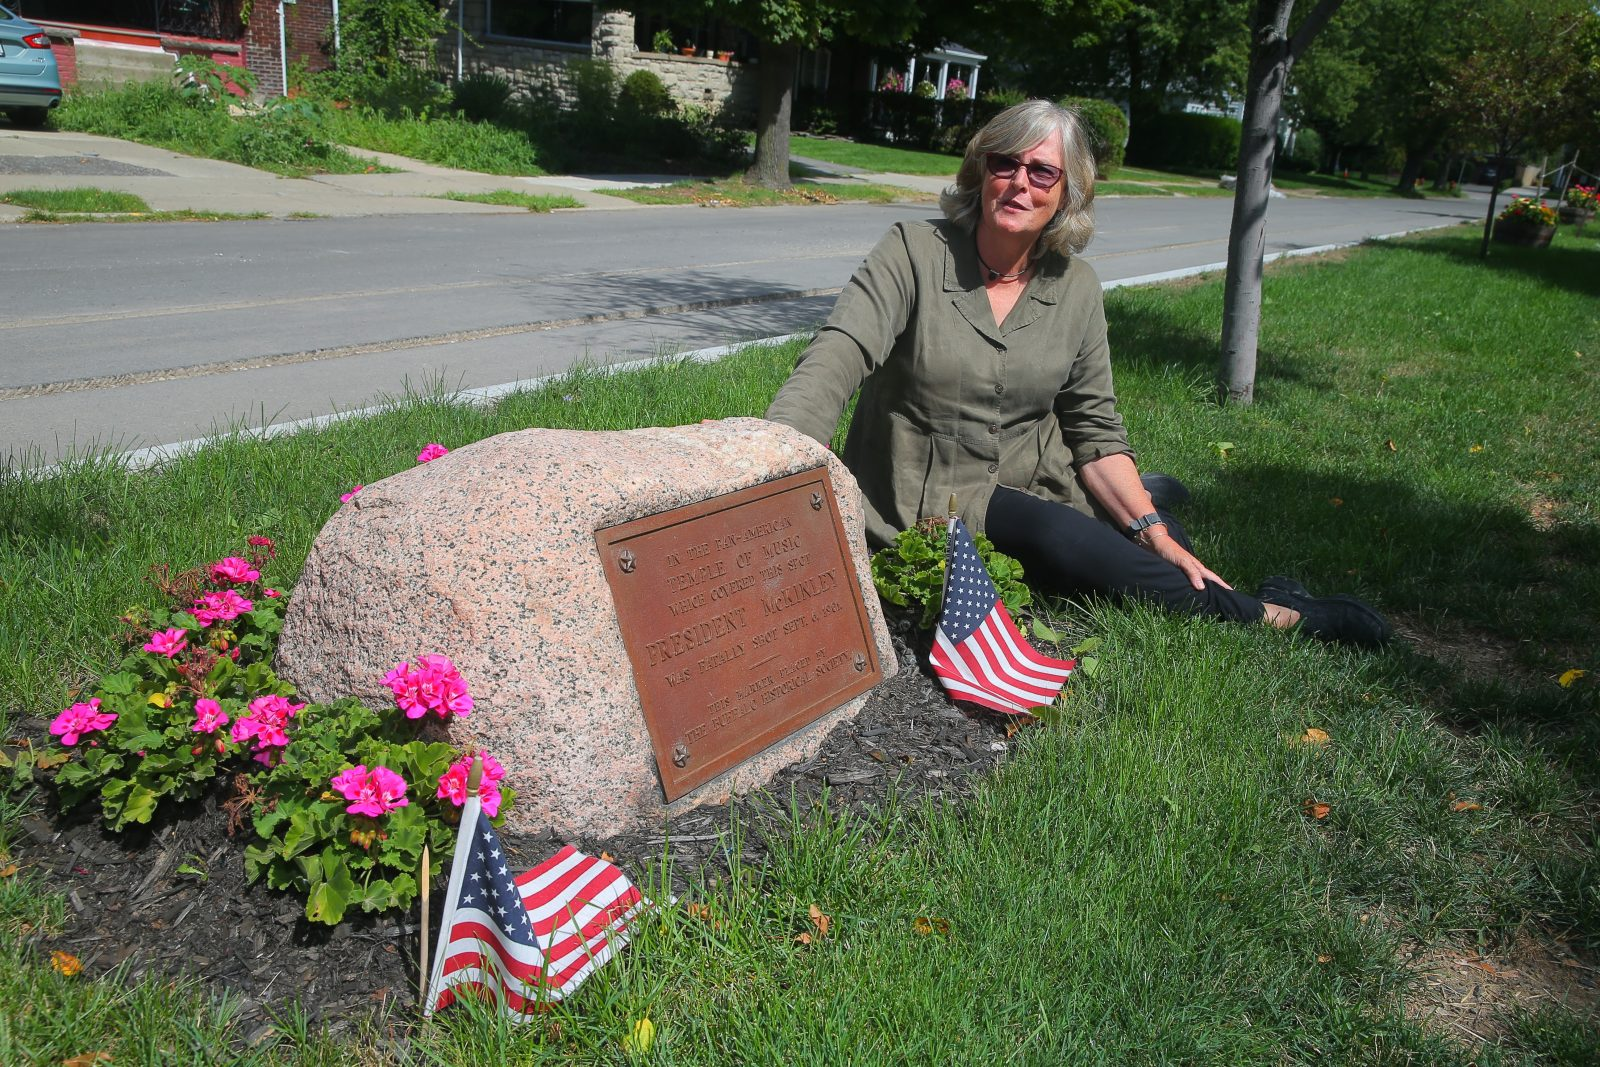 Author Margaret Creighton at the spot where President William McKinley was shot during the Pan-American Exposition in 1901. (John Hickey/Buffalo News)